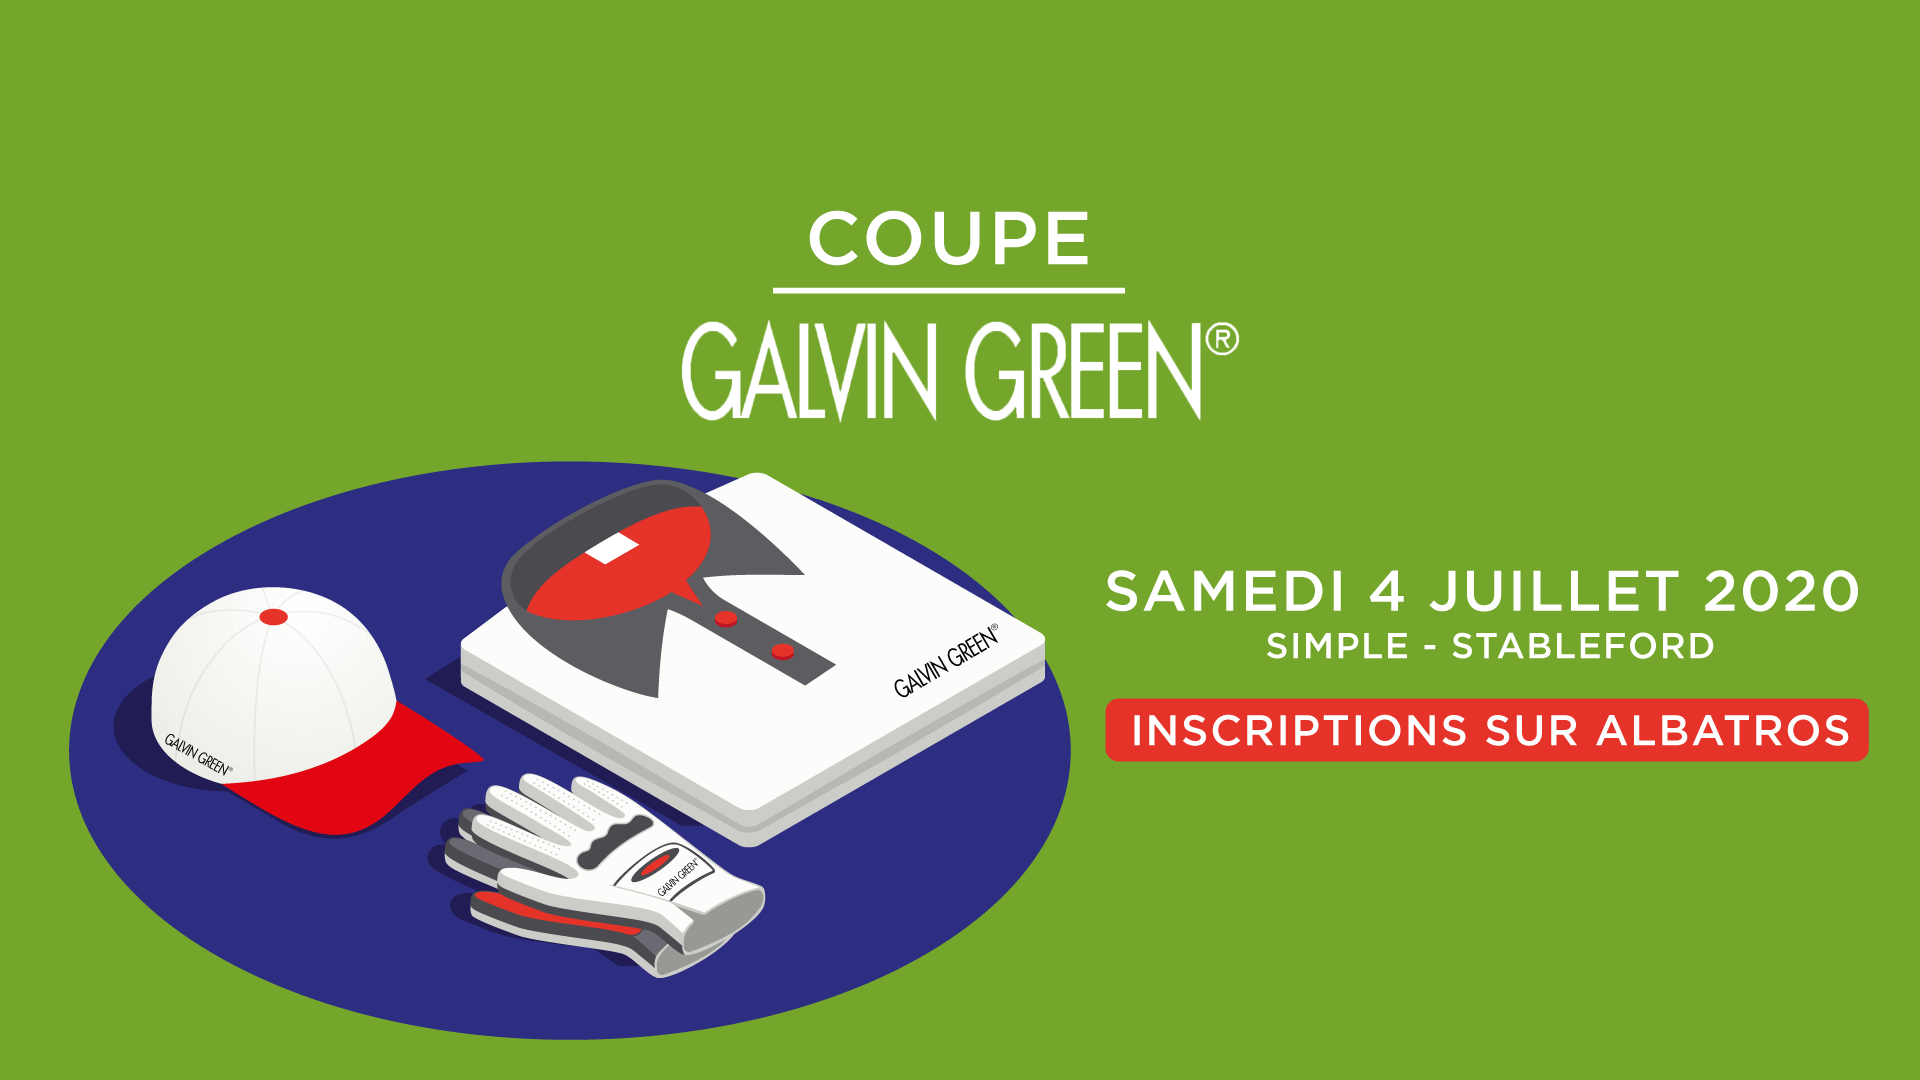 COUPE GALVIN GREEN